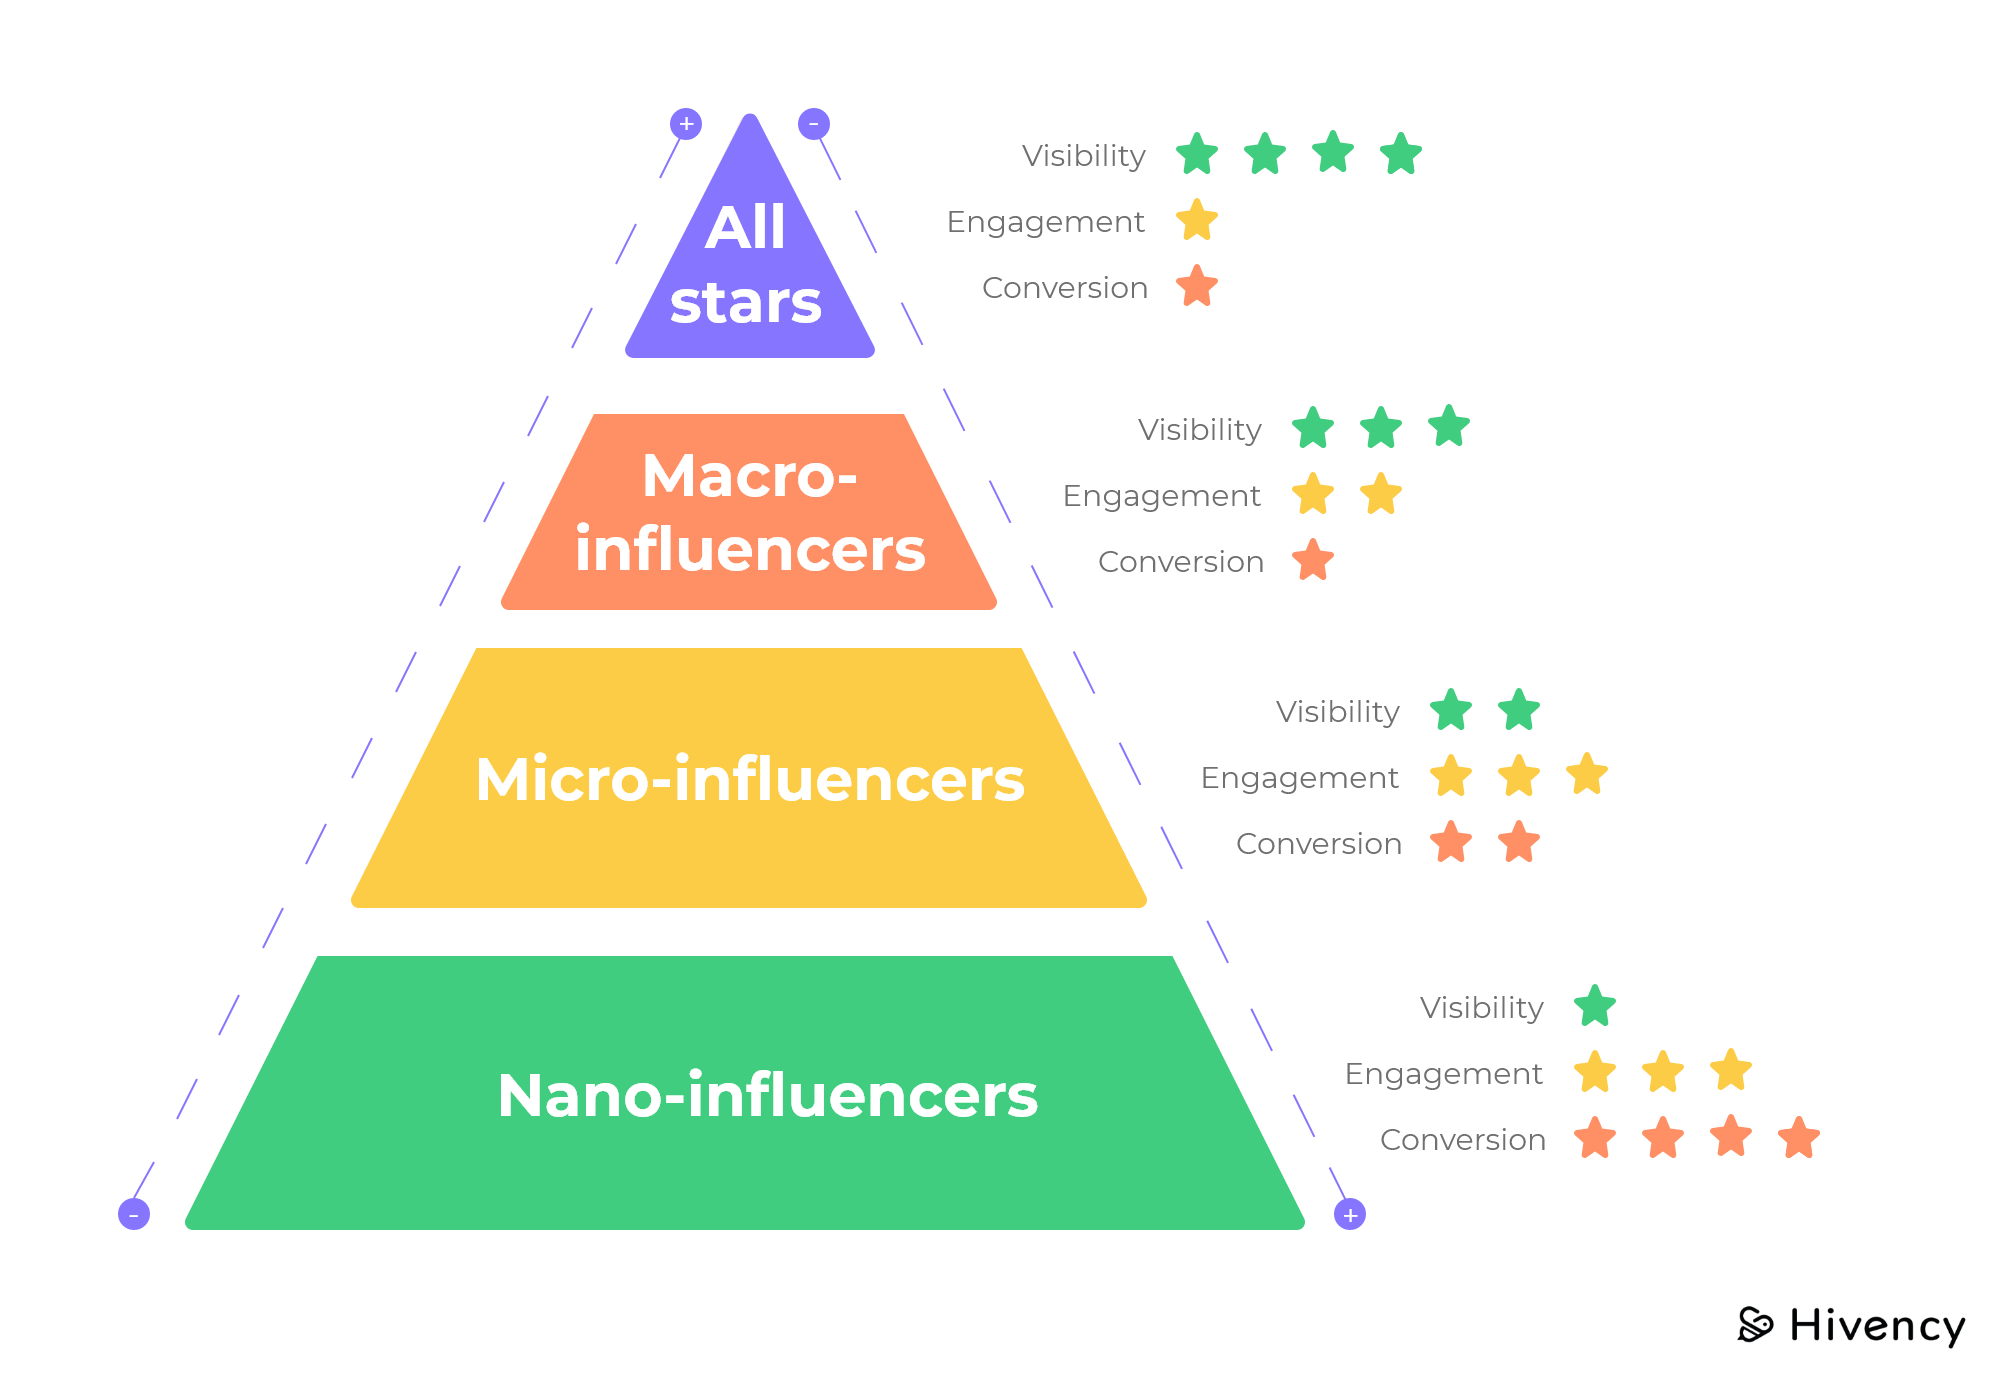 Influence marketing pyramid@2x